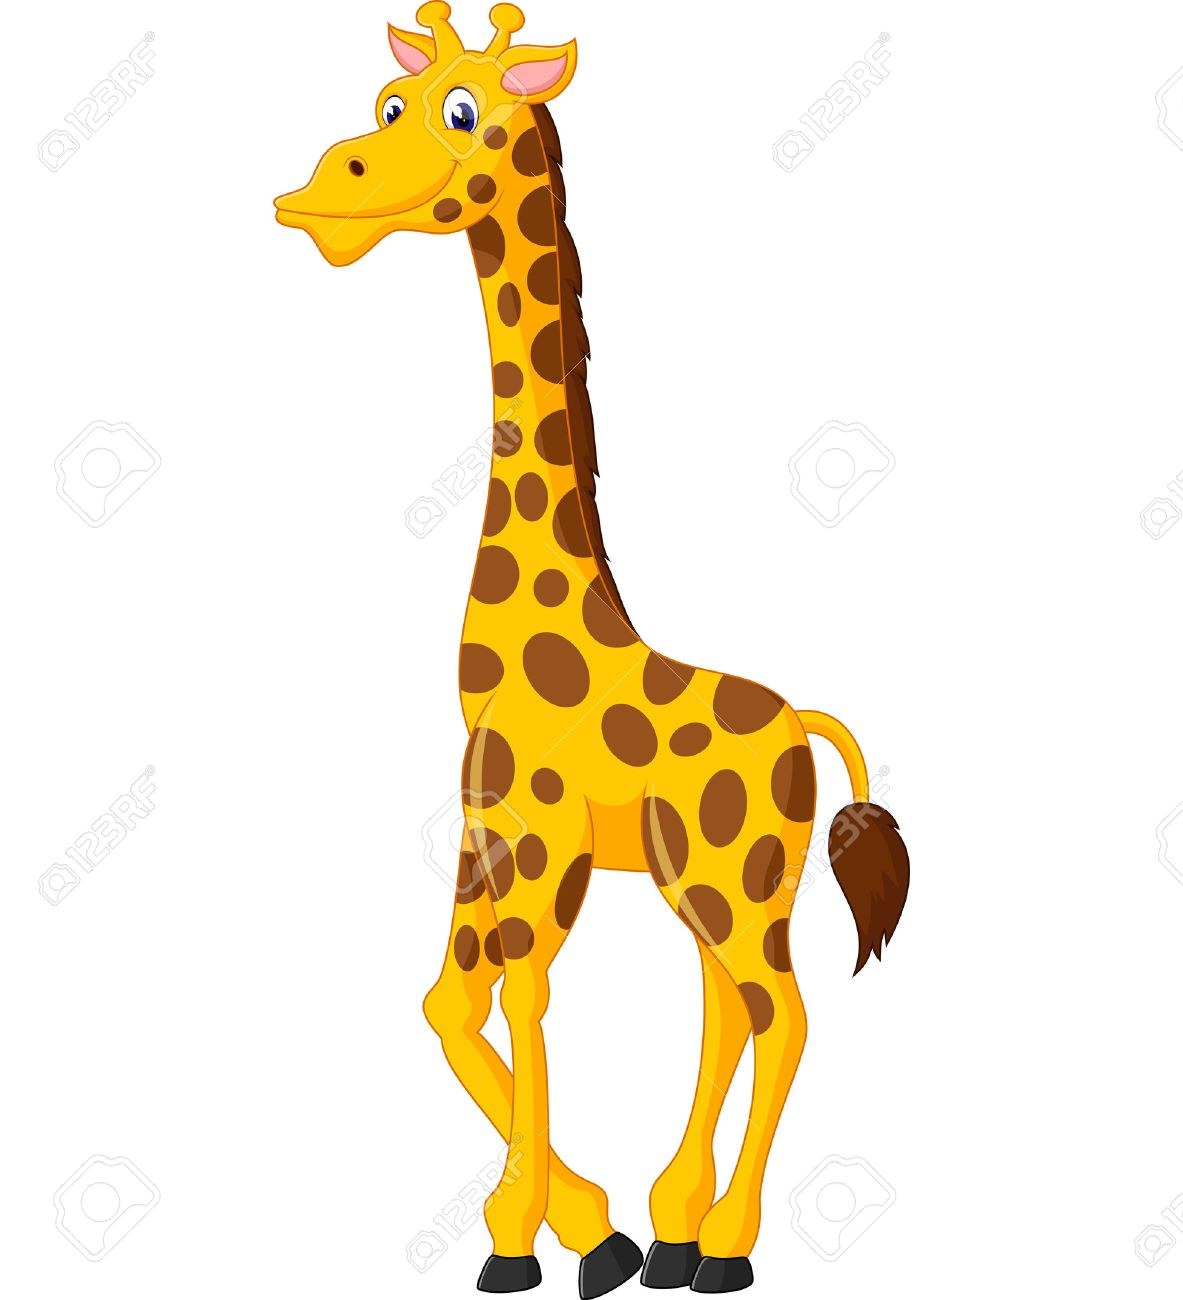 29,585 Giraffe Stock Vector Illustration And Royalty Free Giraffe.